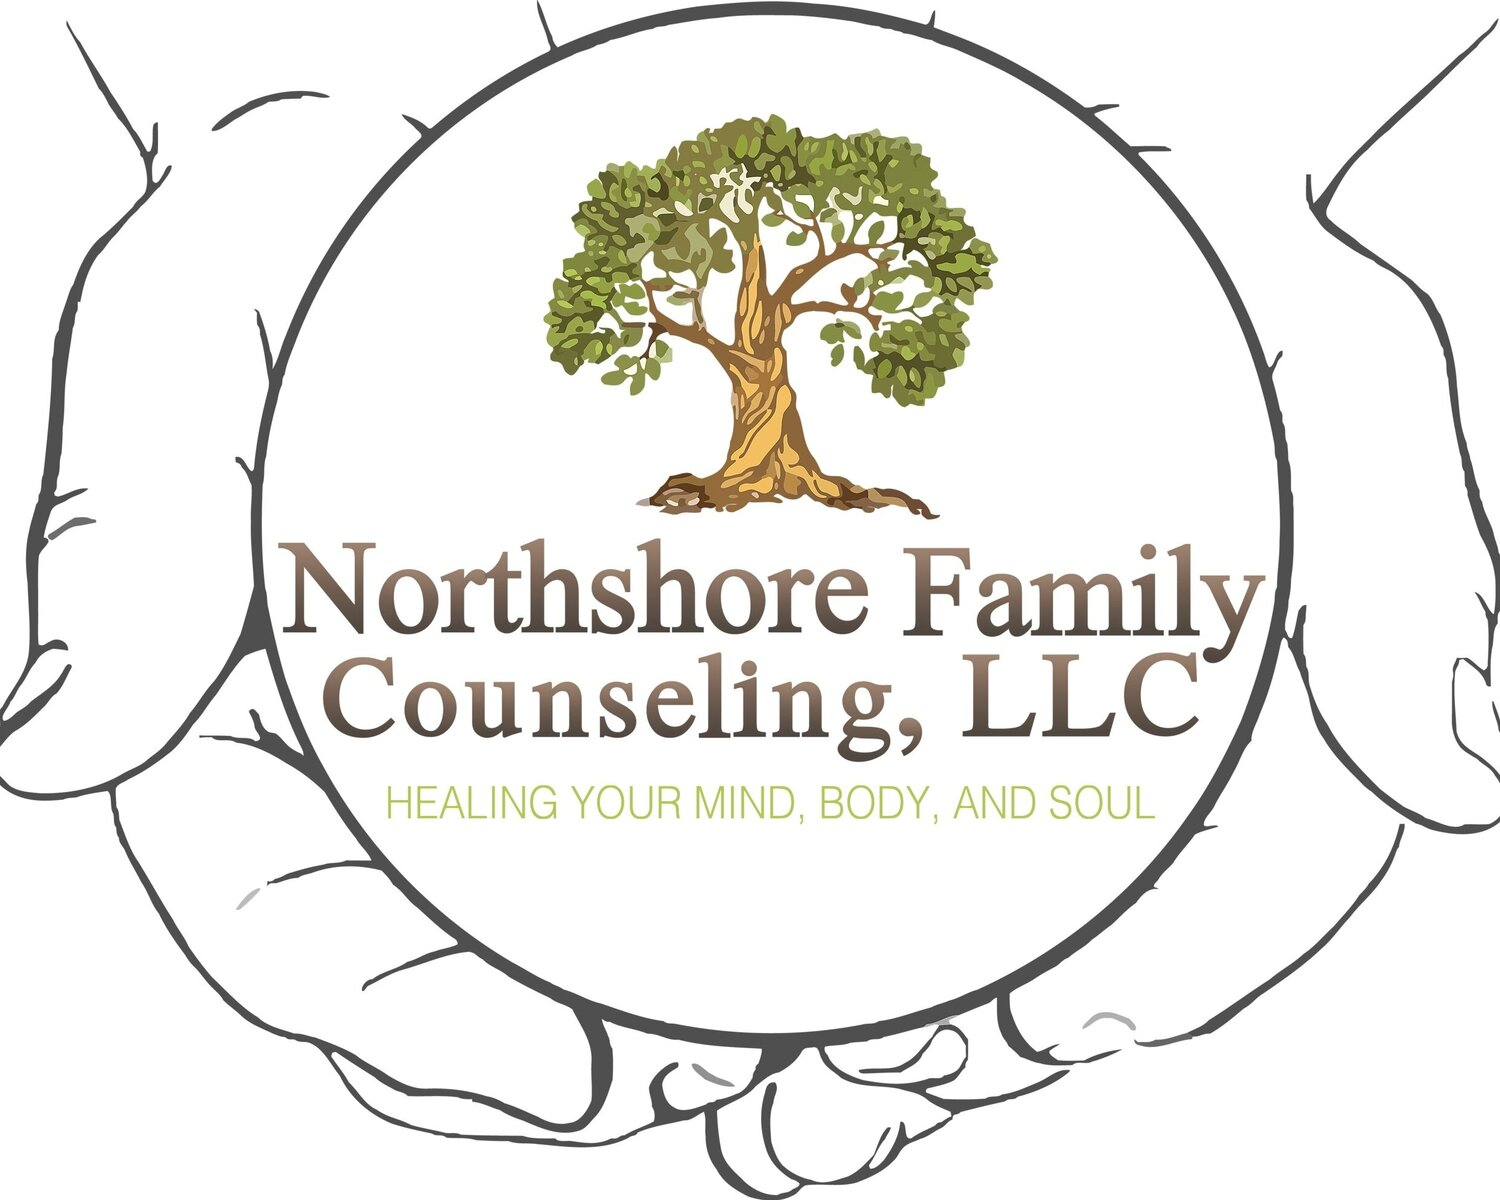 Northshore Family Counseling, LLC